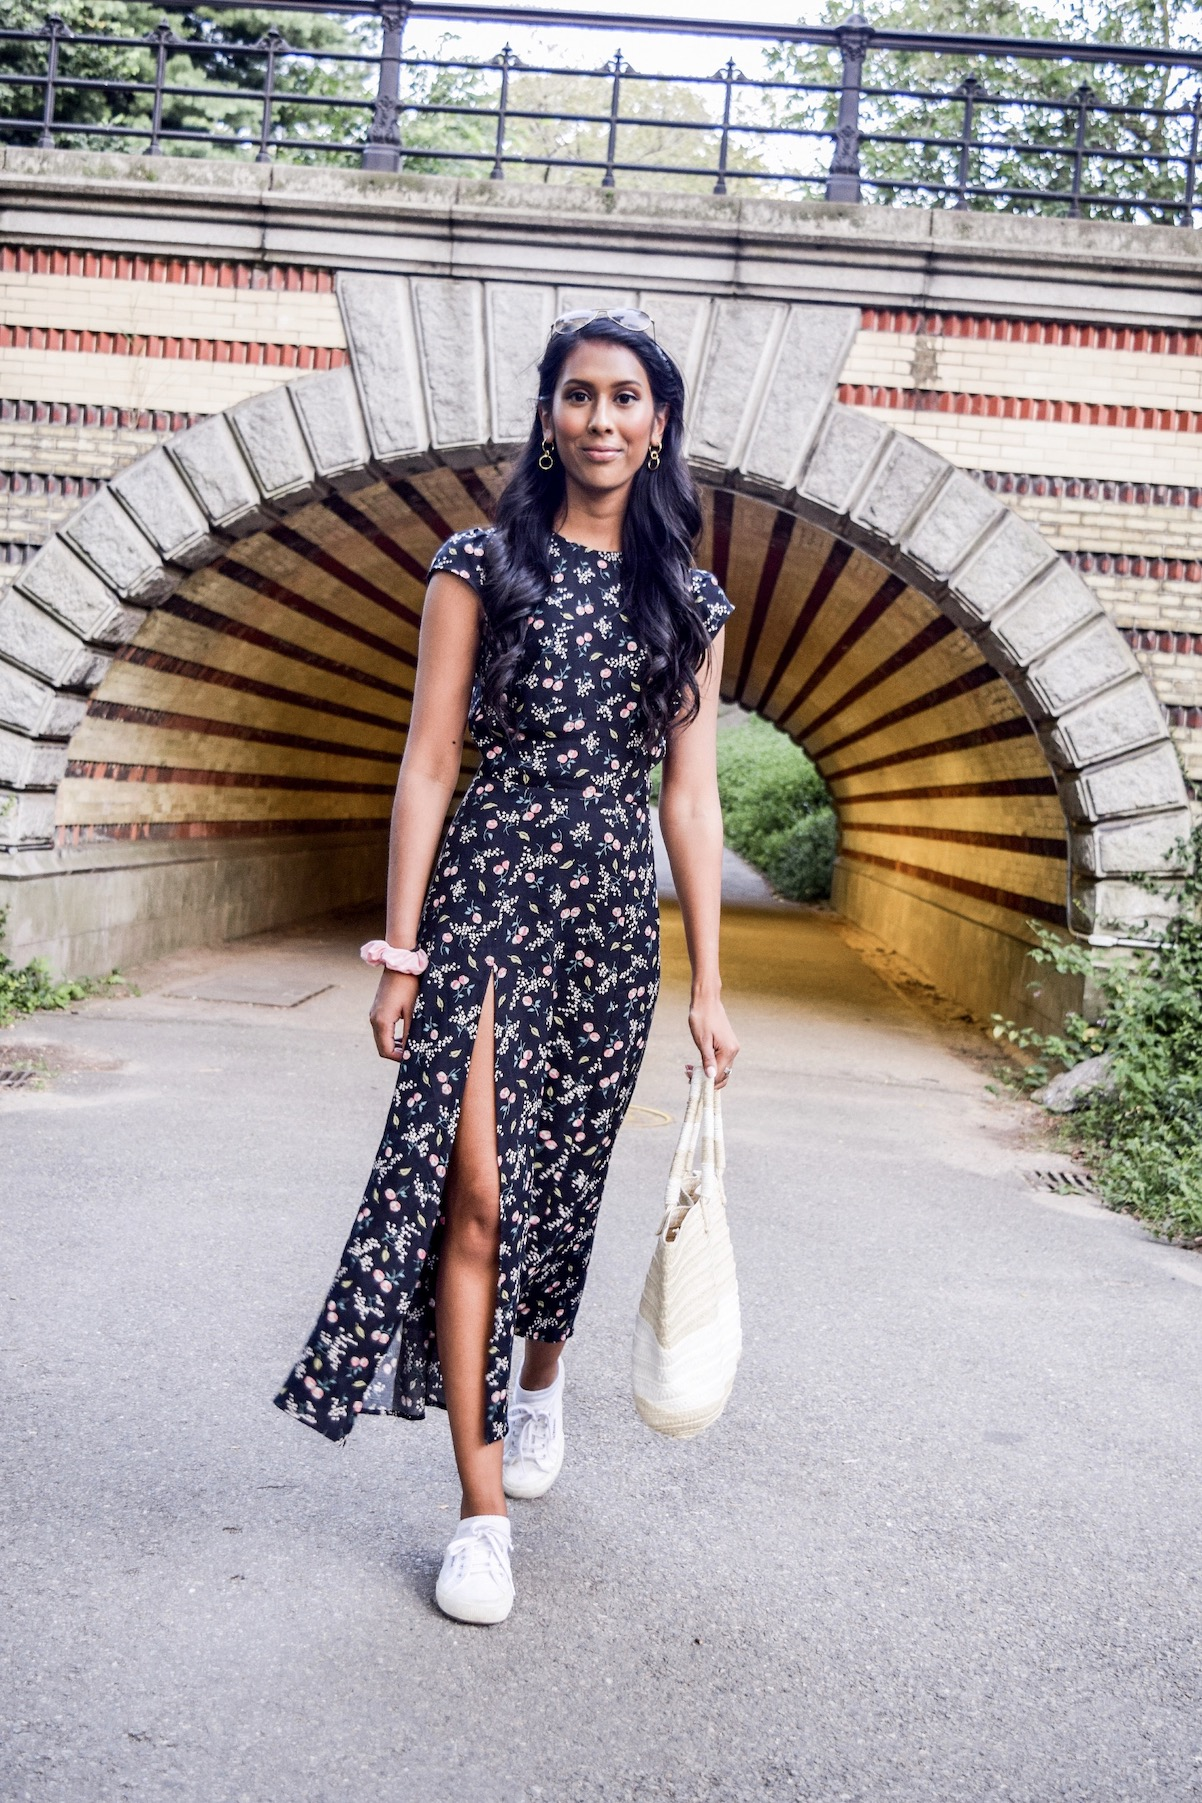 Reformation floral dress // A Week Of Conscious Trend-Forward Outfits With Sabrina Ramkhelawan From Flaunt Your Fancy on The Good Trade